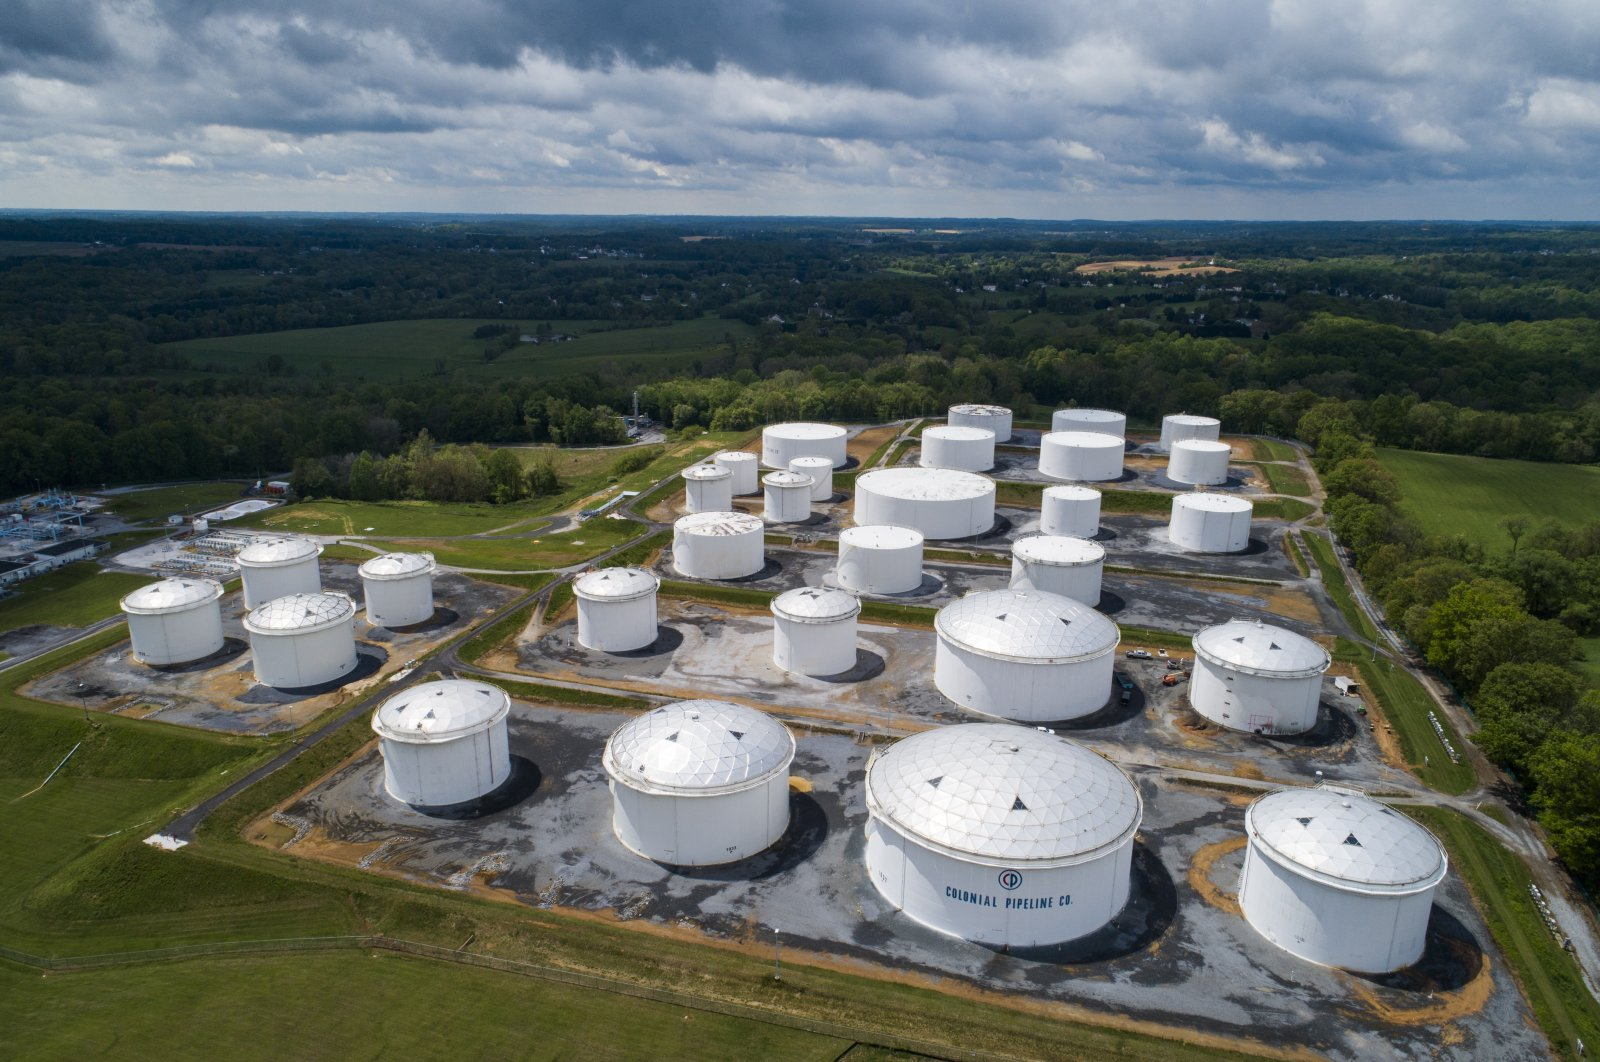 Fuel tanks at a Colonial Pipeline breakout station in Woodbine, Maryland, U.S., May 8, 2021. (EPA Photo)